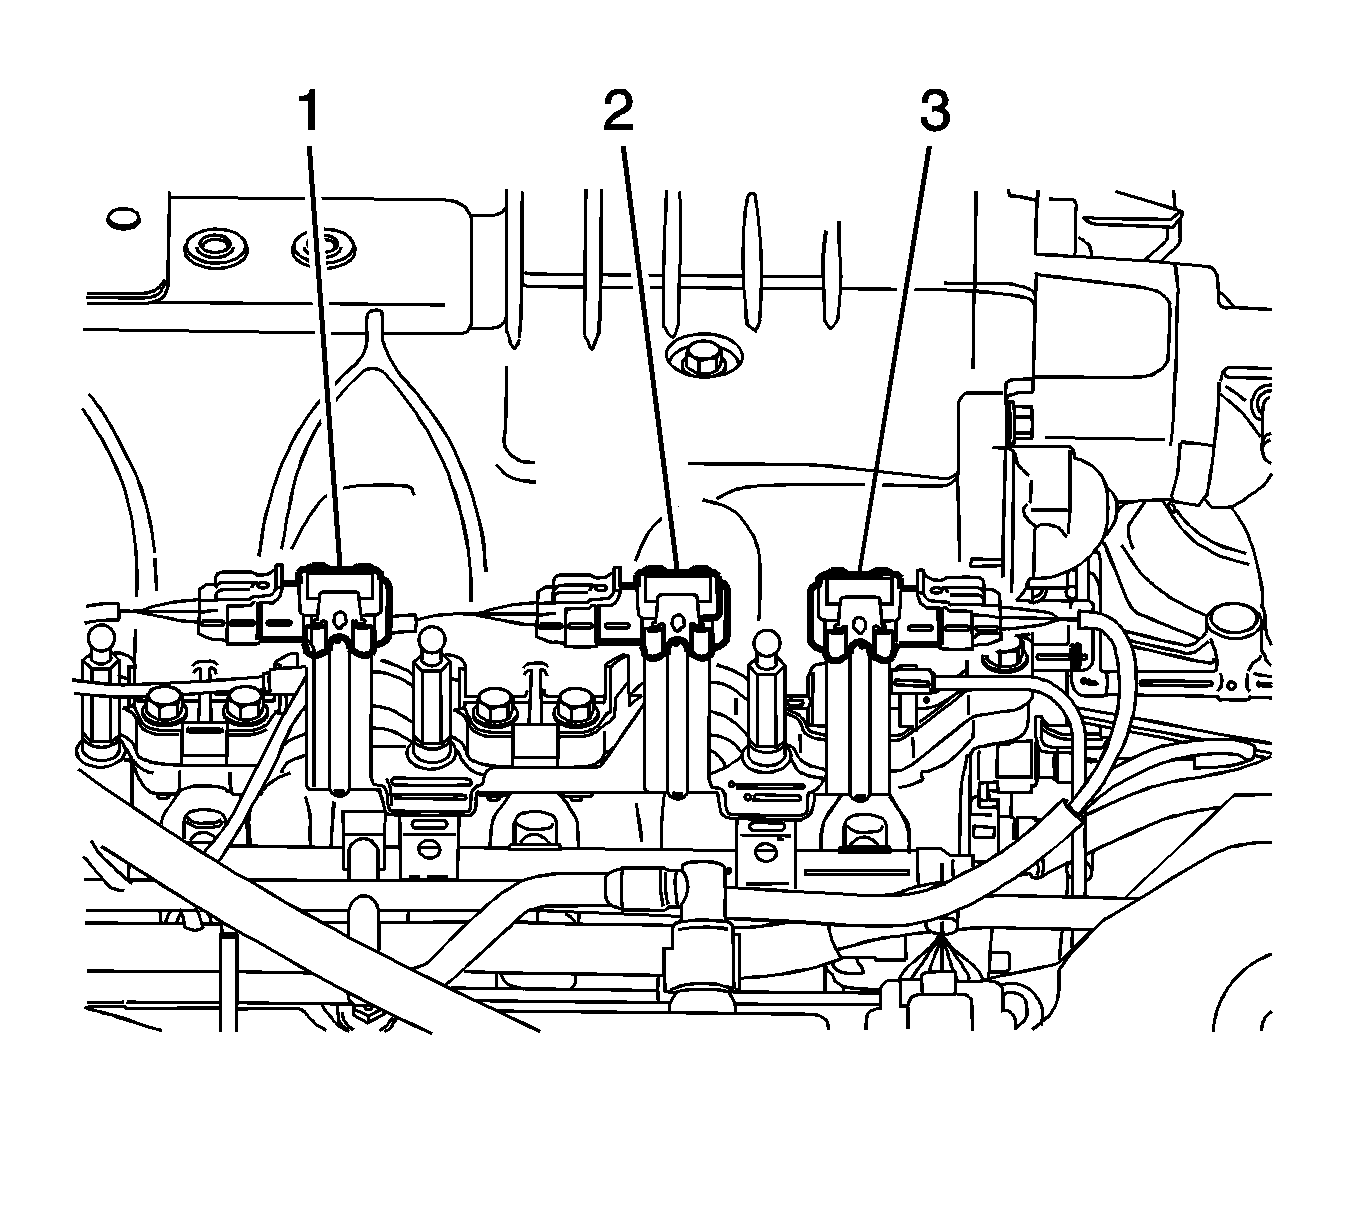 [RS_4554] 2006 Cadillac Cts Engine Diagram Schematic Wiring